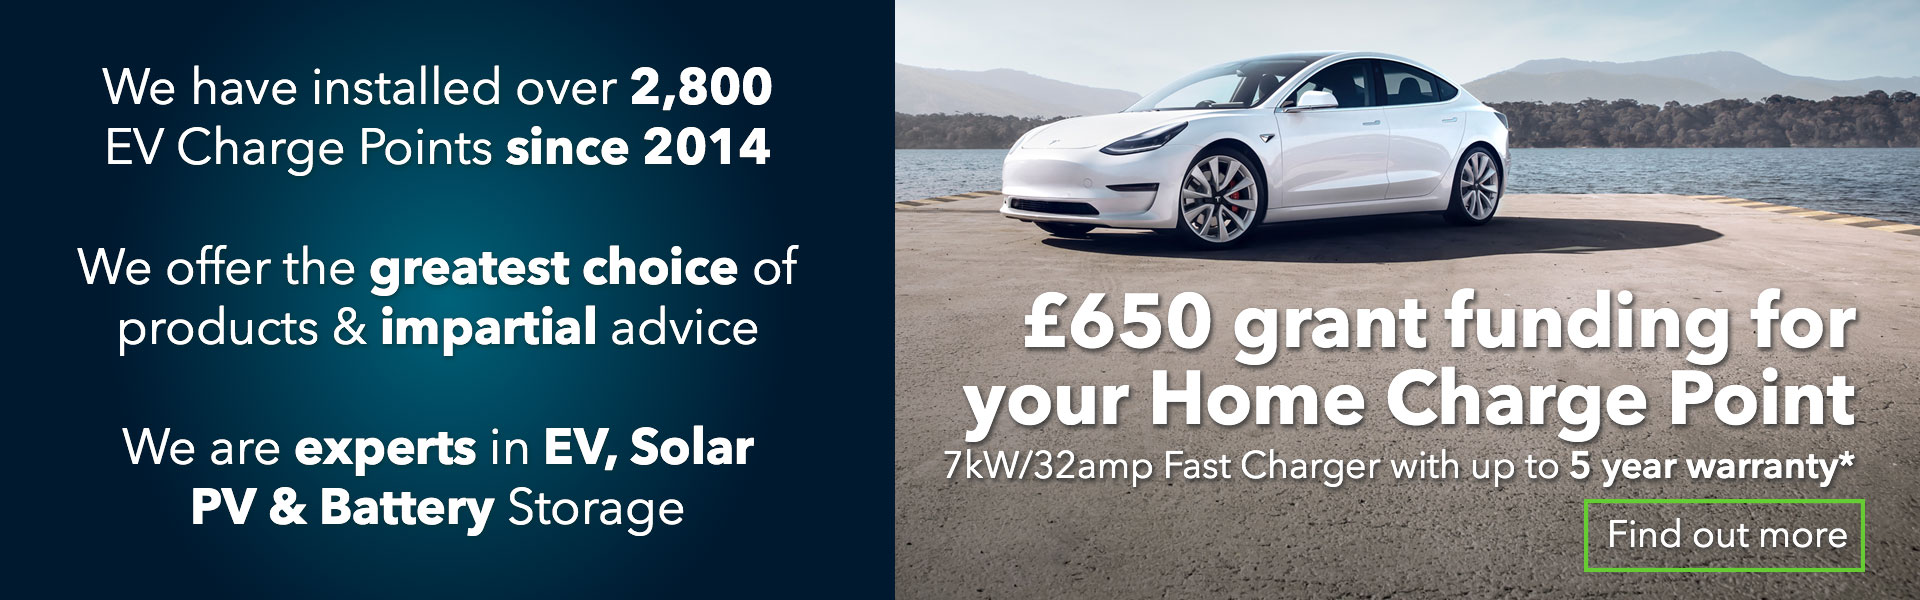 EV Home charger grants